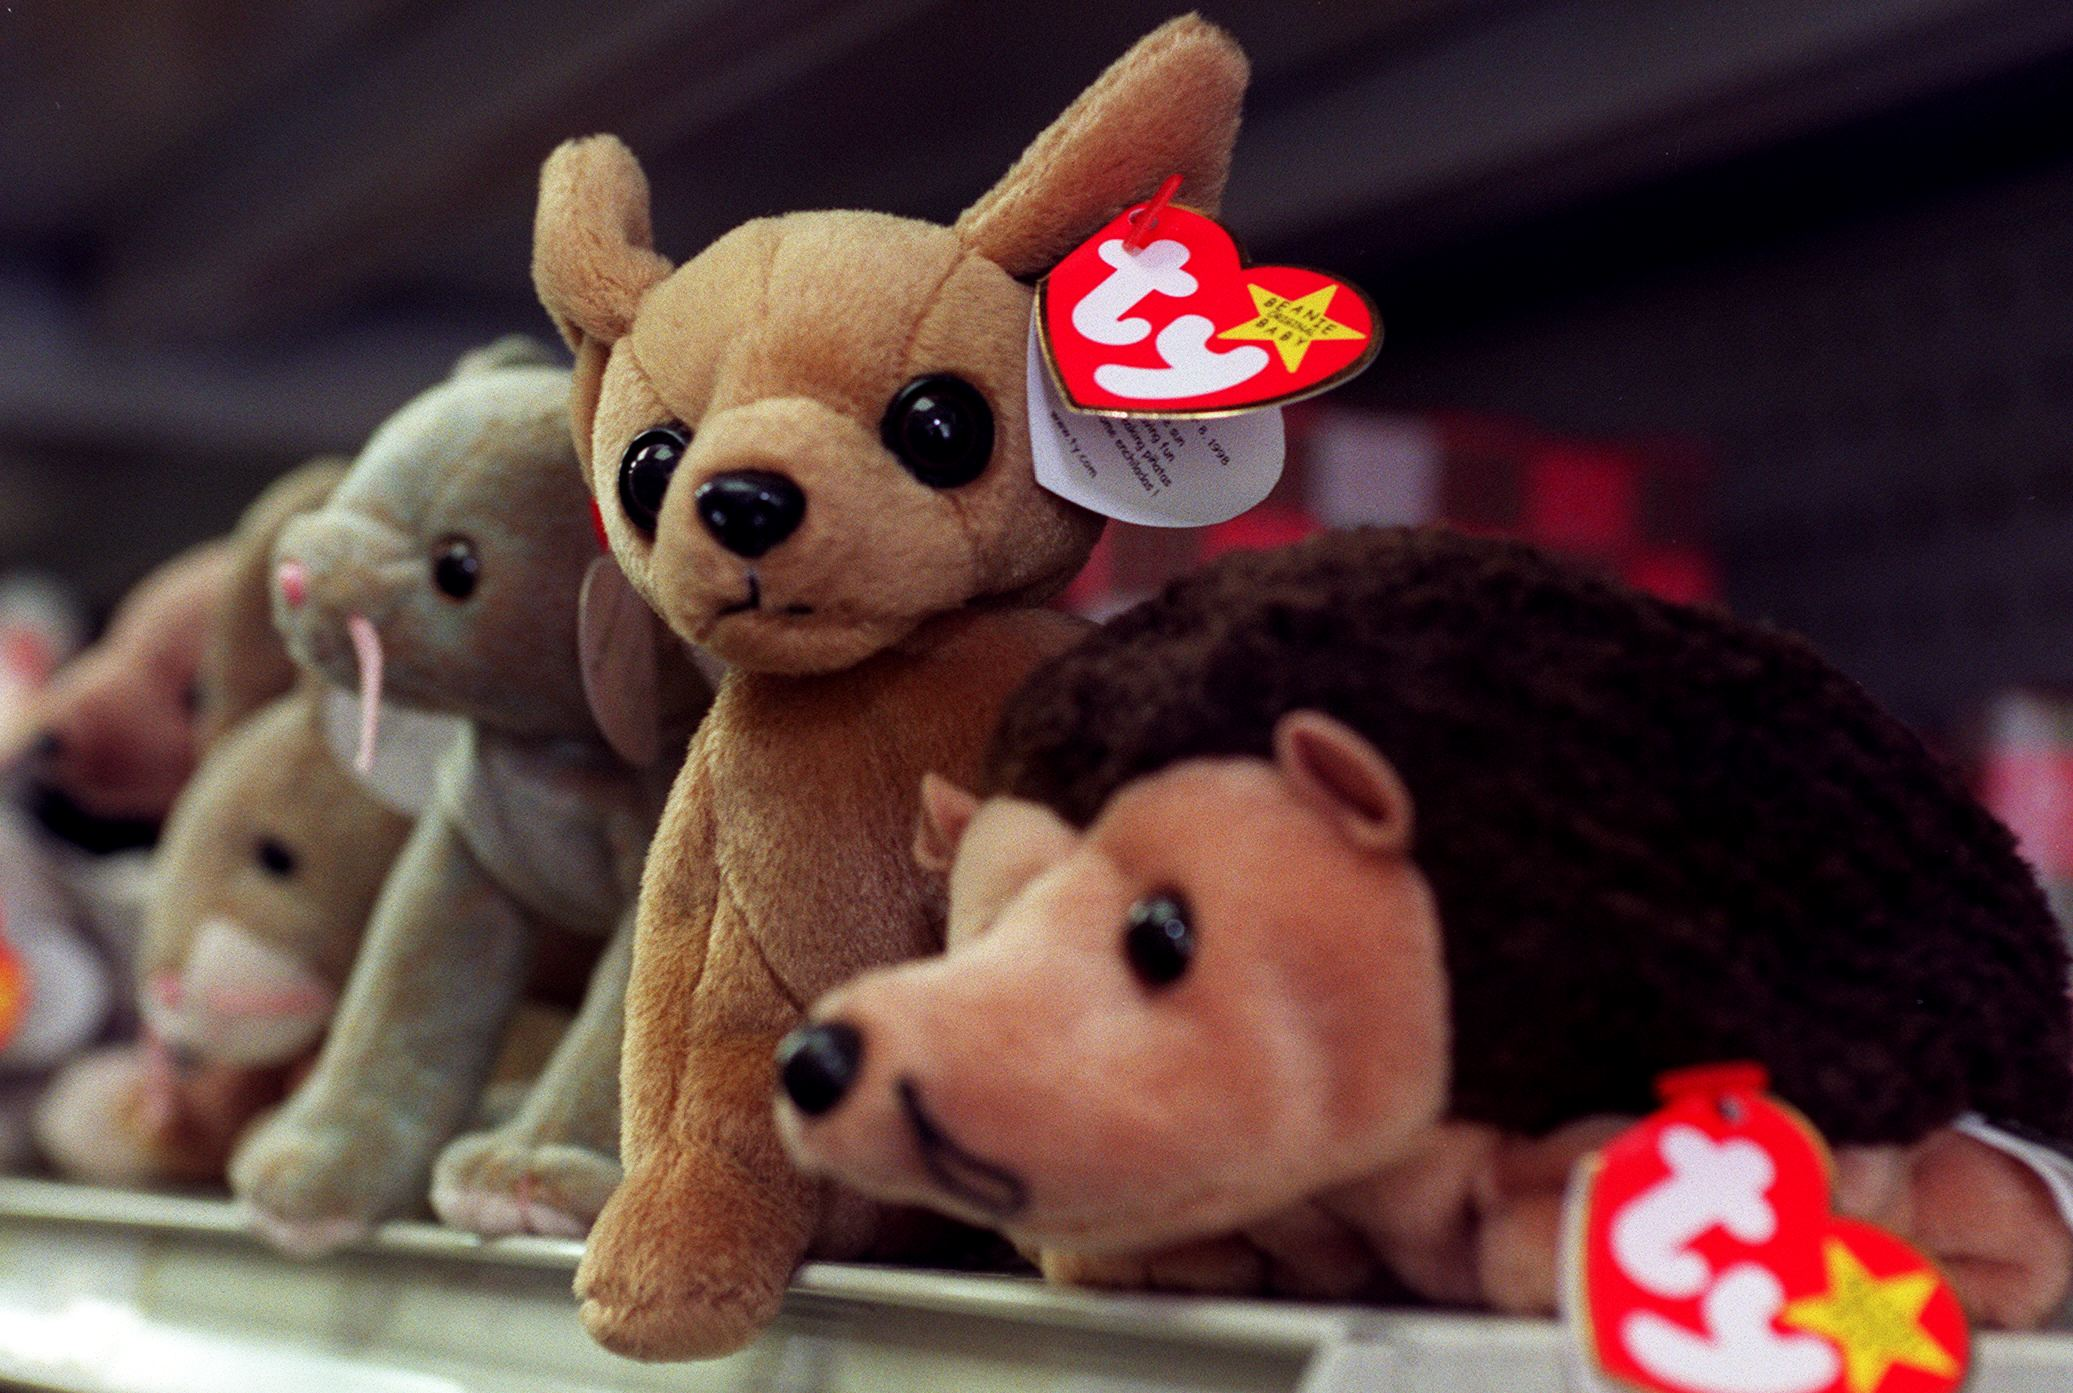 Most Popular Toys of the 90s: Beanie Babies